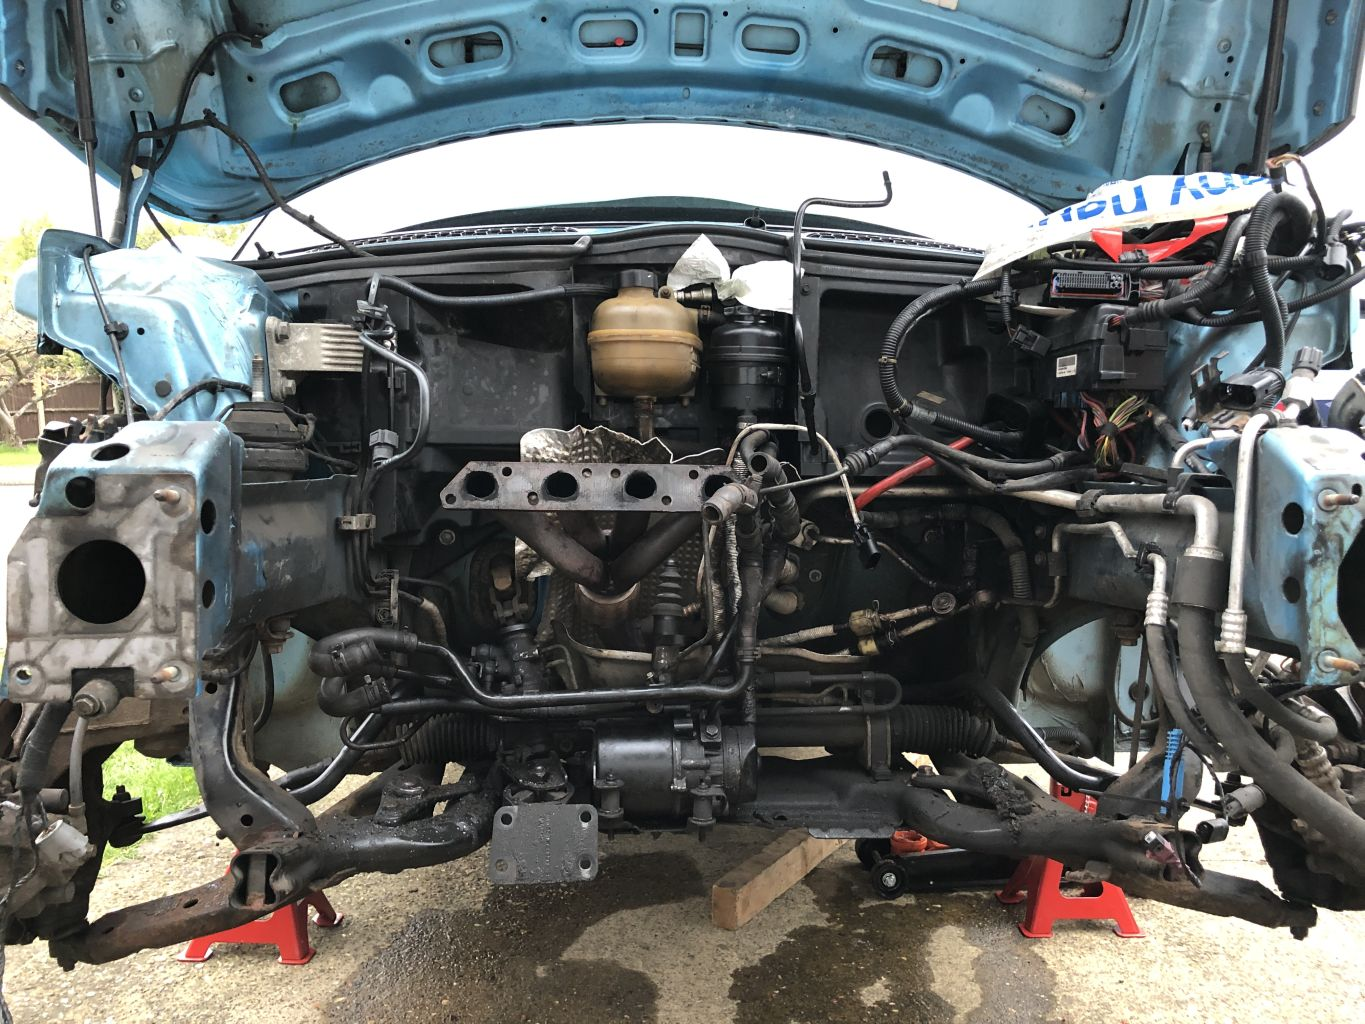 MINI Cooper S R53 Engine removed from car